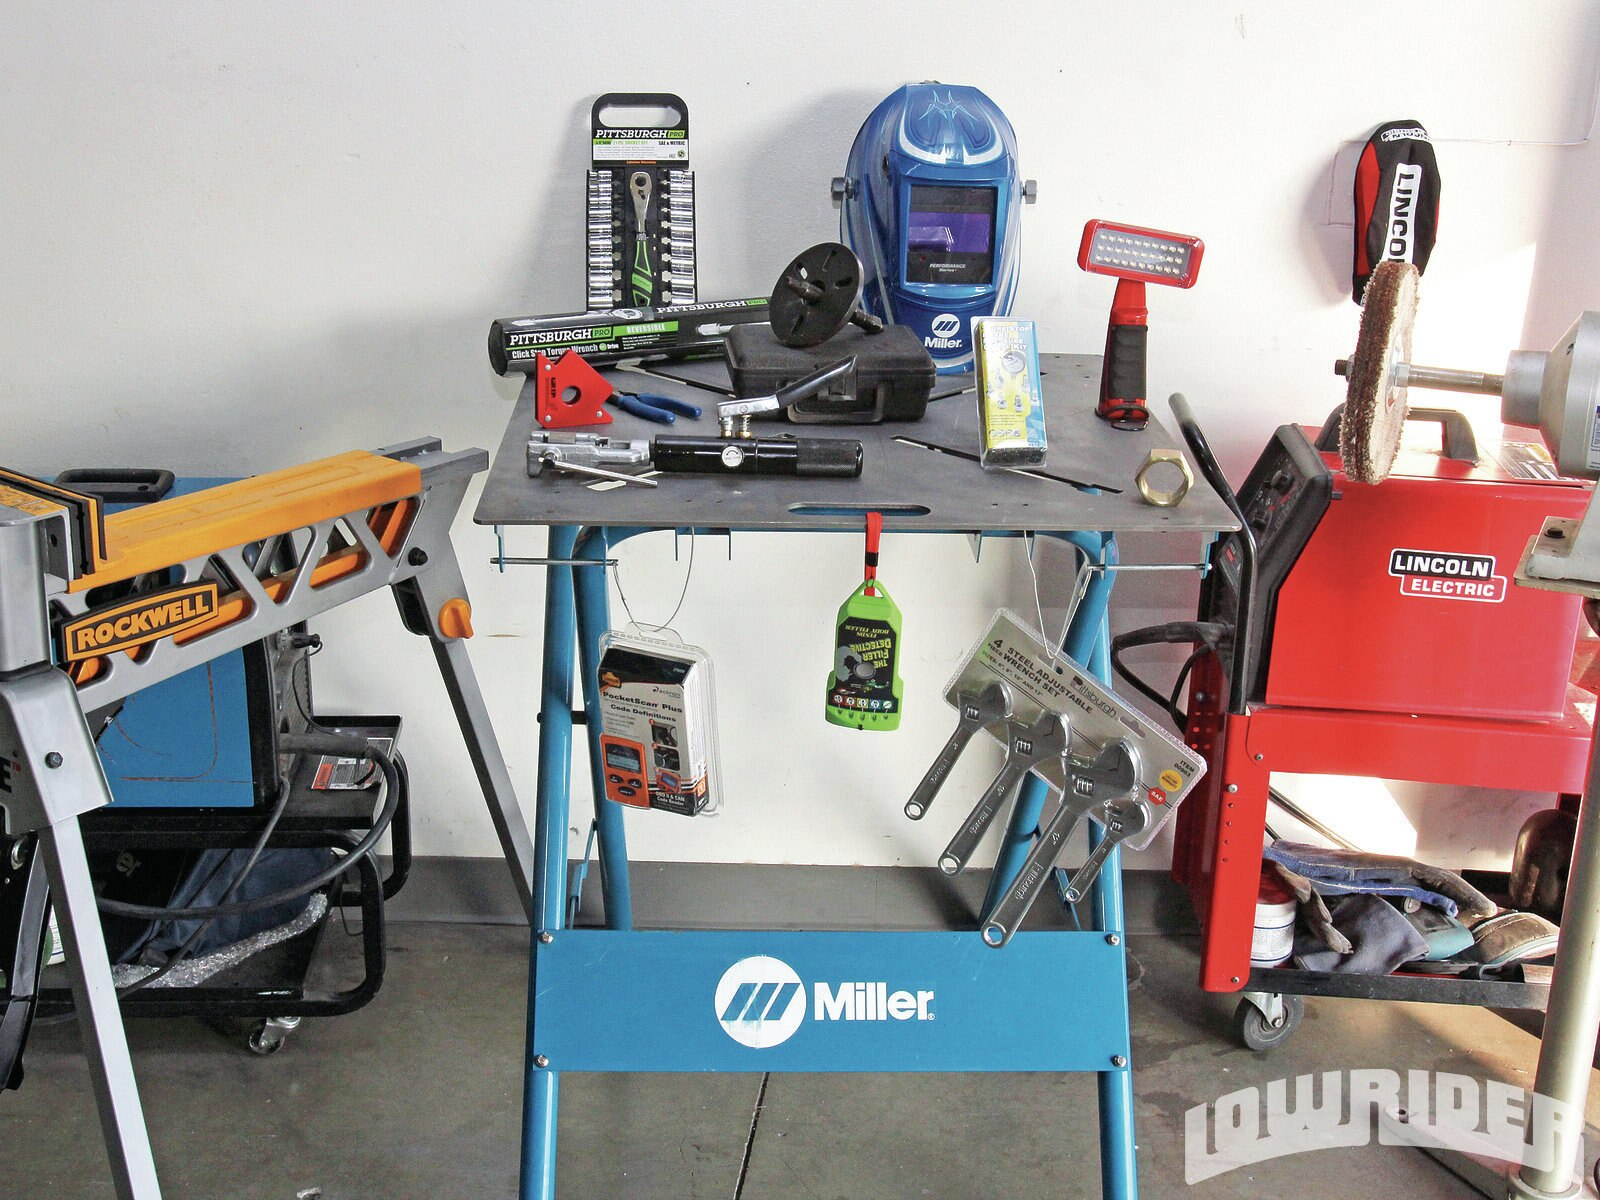 <center><strong>1.</strong> The cool tools line up.</center>